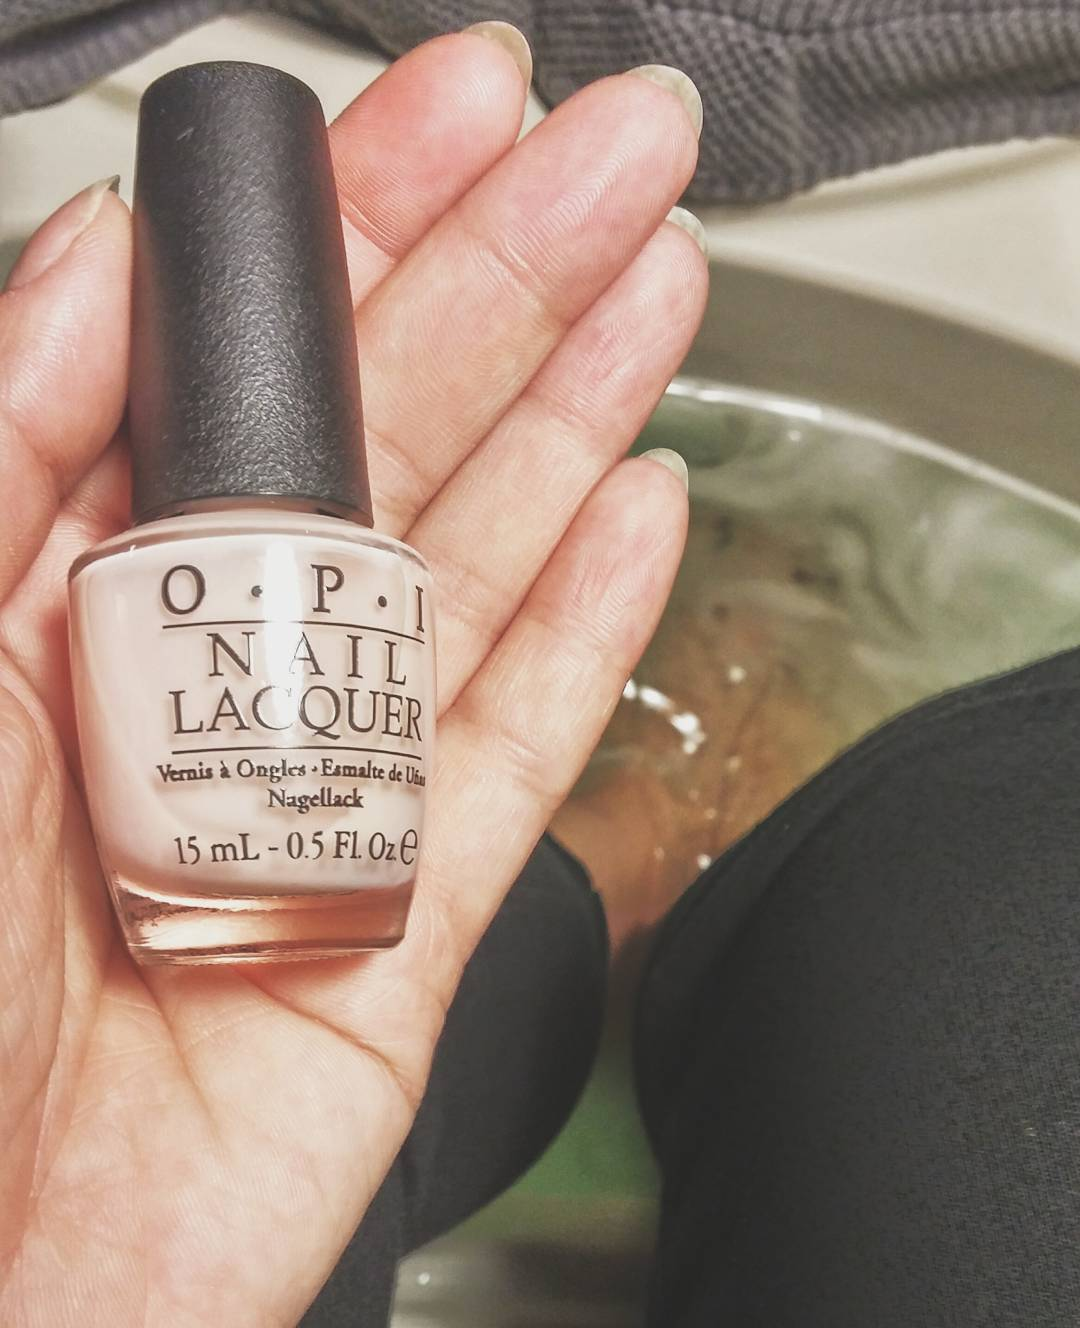 A quiet hour spent at @CamdenSpa today coupled with one of my favourite @OpiCanada polish shades, #BarreMySoul 💅